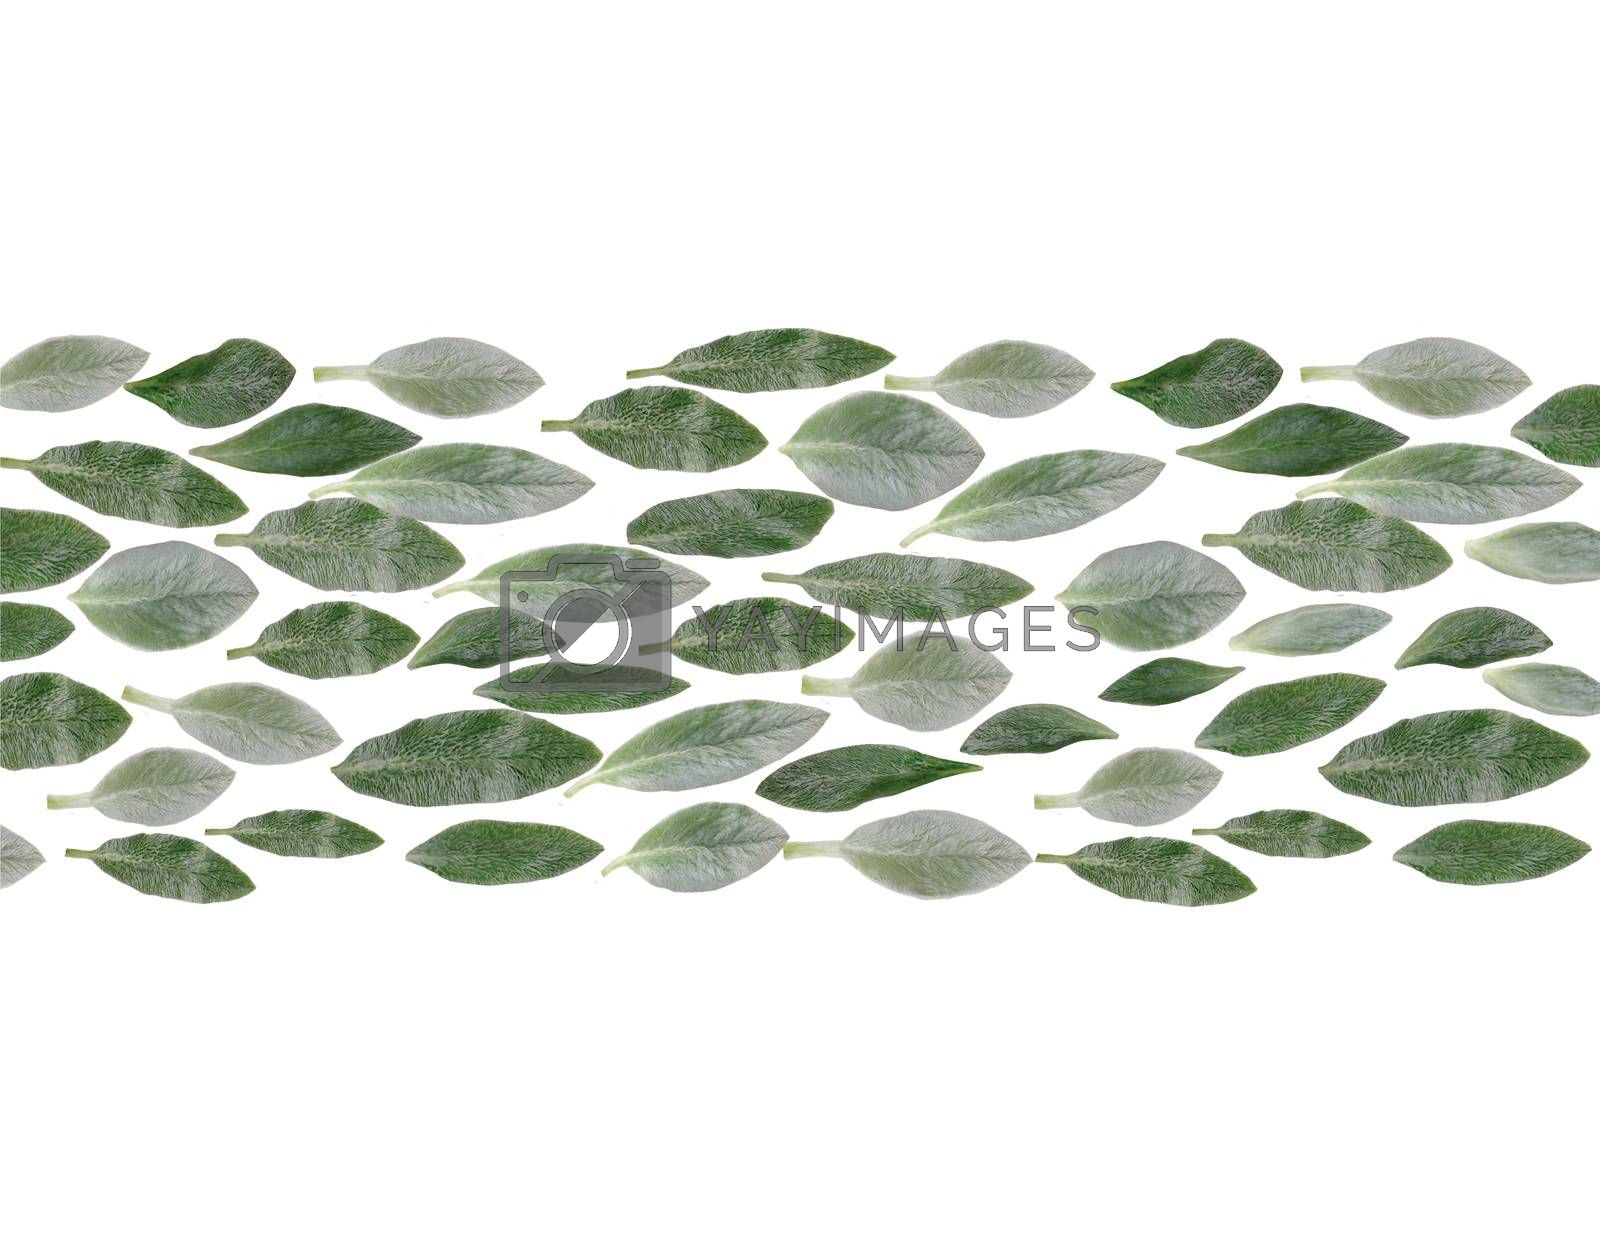 Green leaves horizontal line natural pattern isolated on white background. Closeup top view.